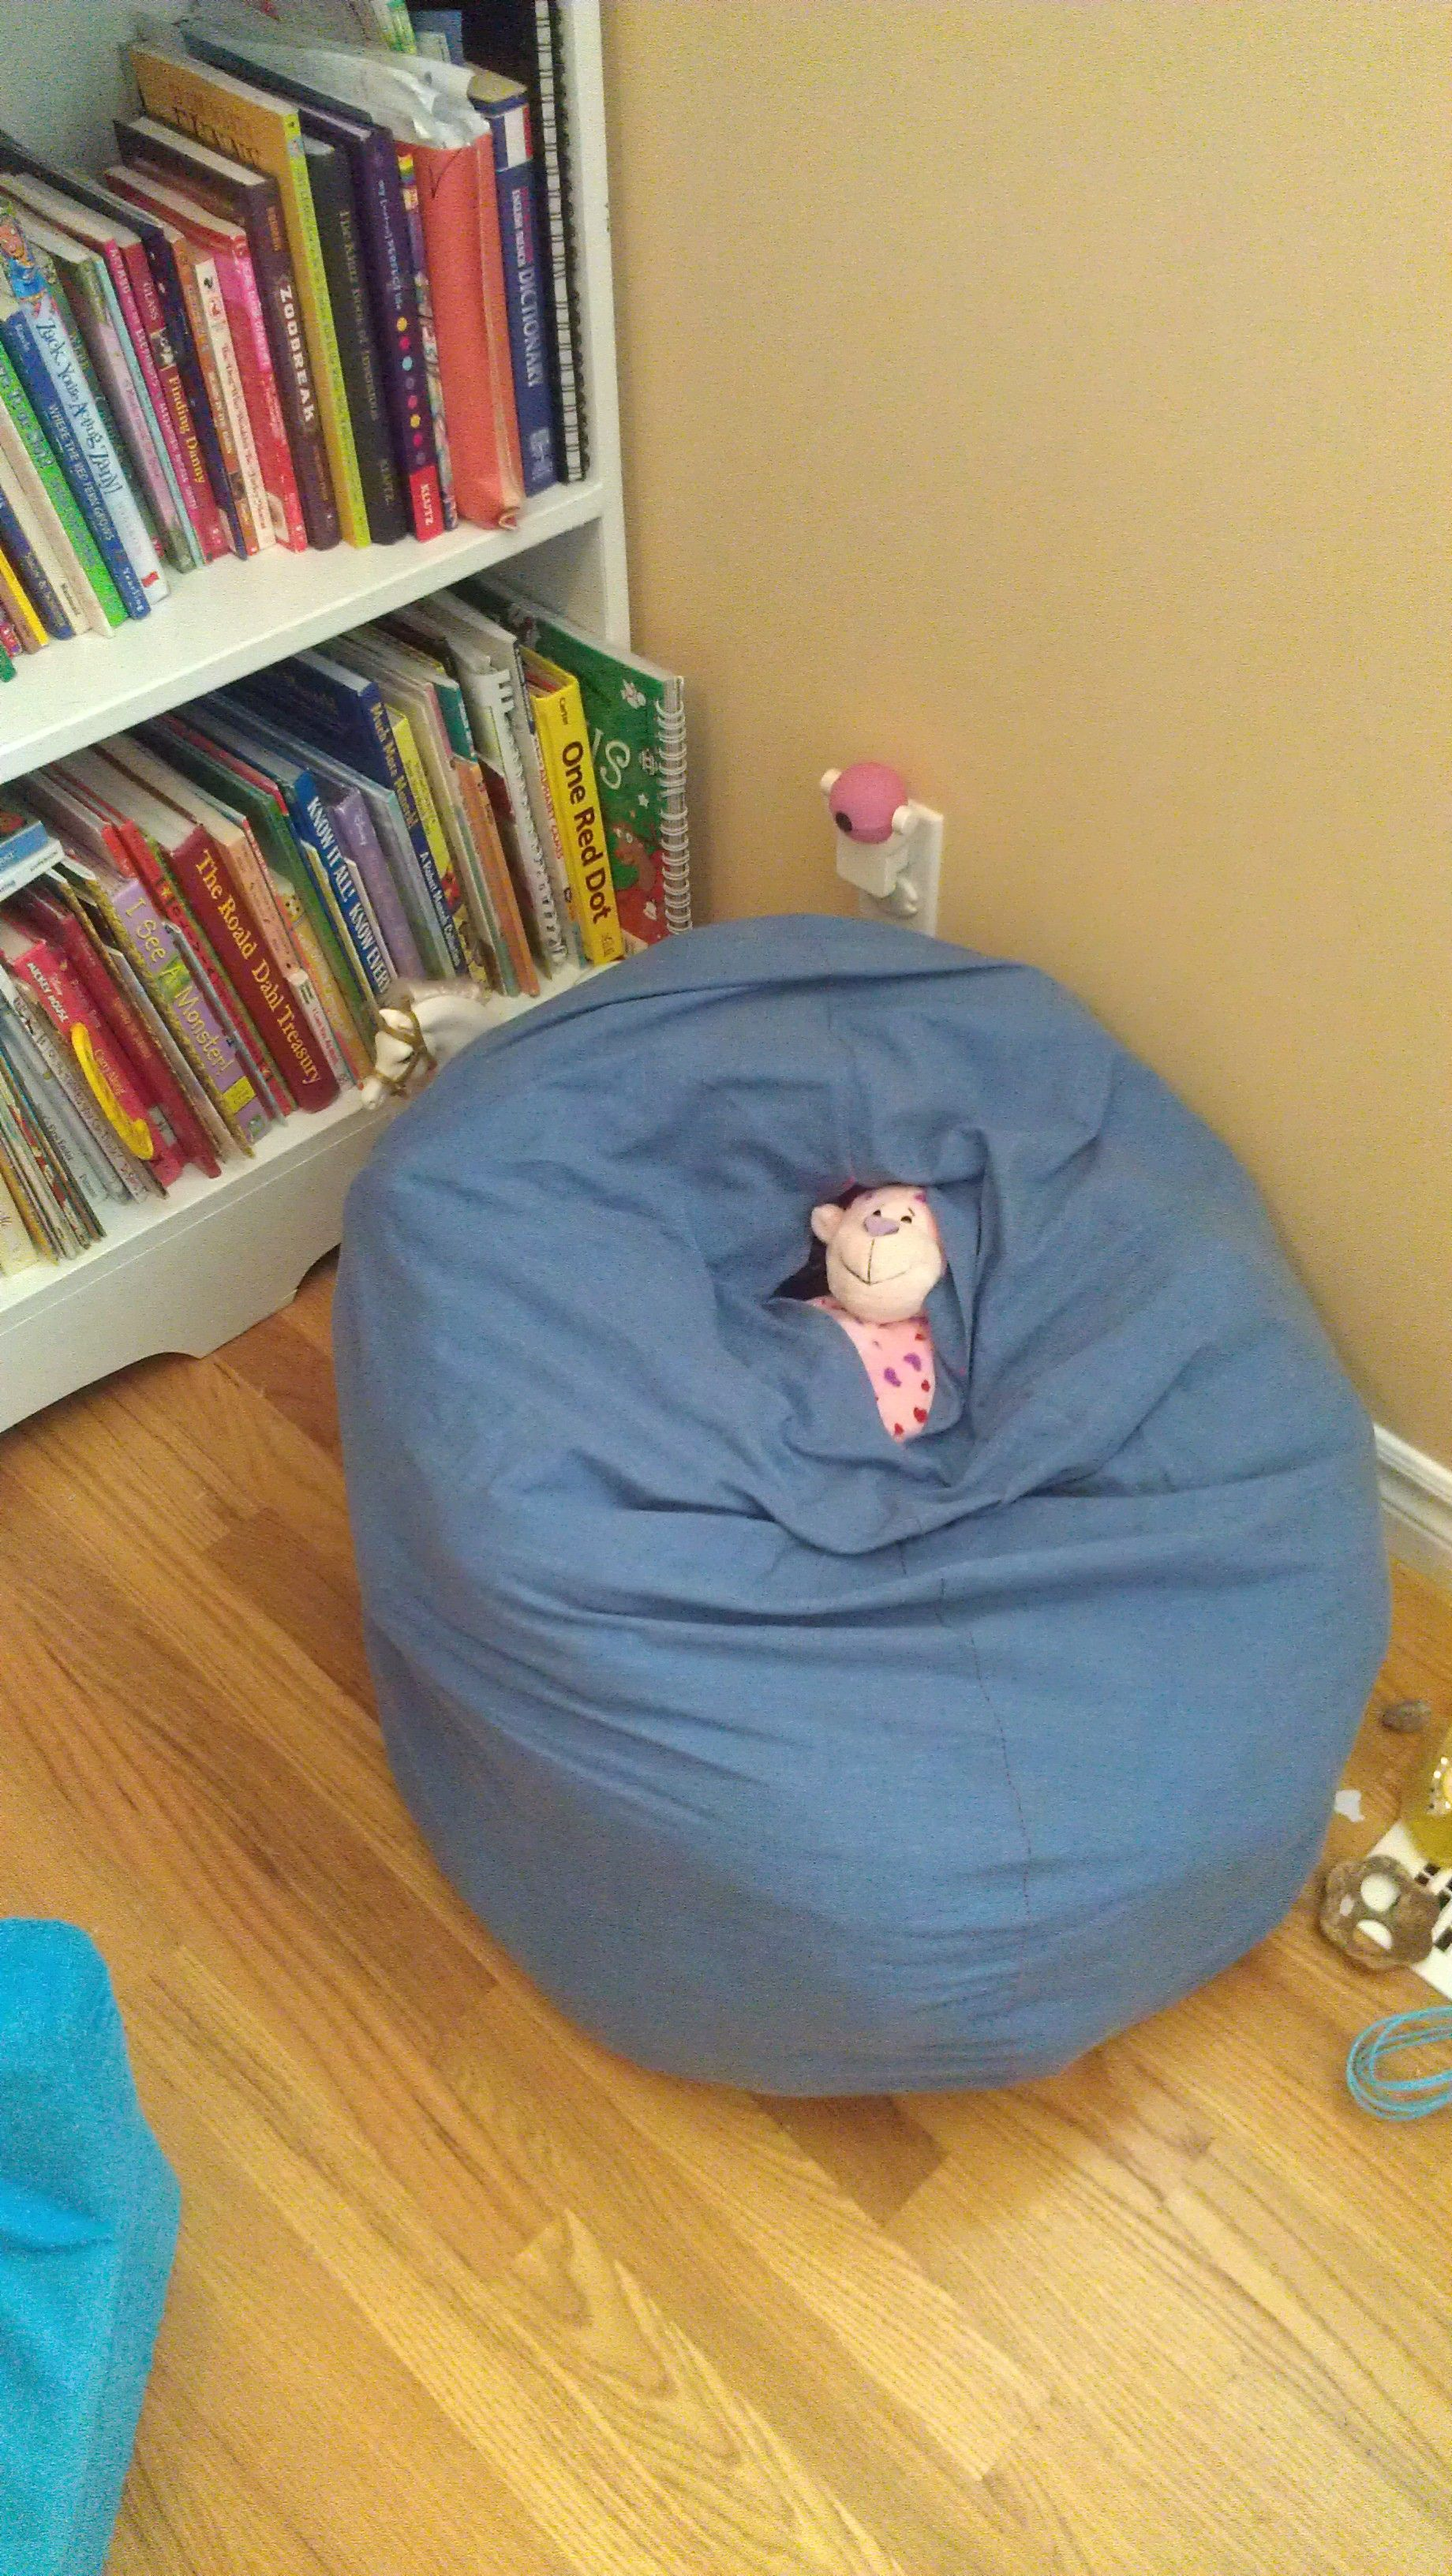 Made A Beanbag Chair Out Of An Old Sheet Filled It With Stuffed